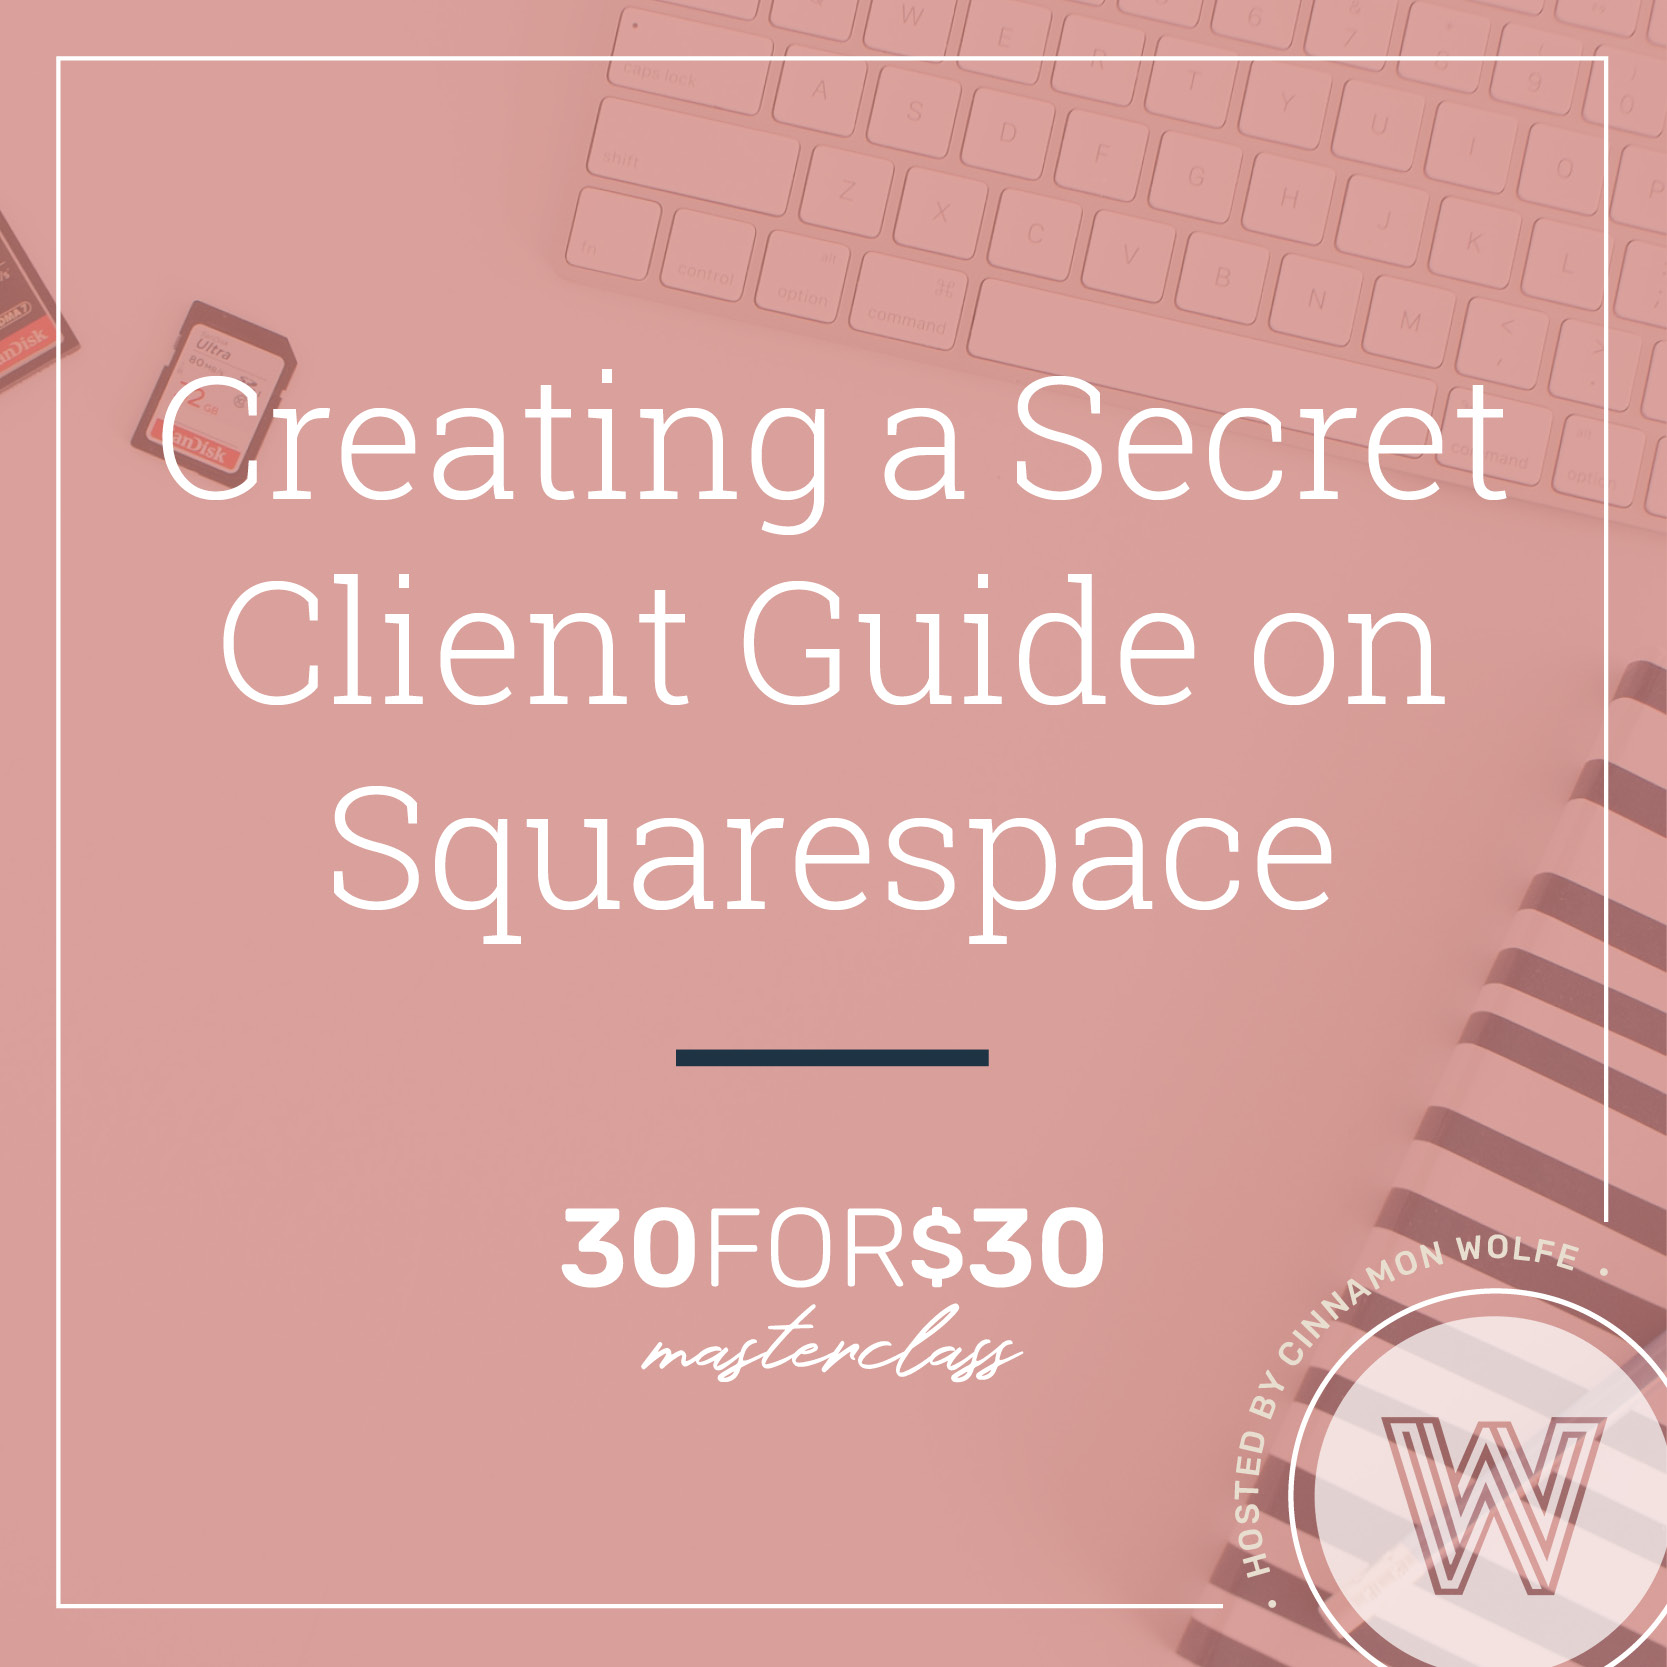 Creating a Secret Client Guide on Squarespace 30 for $30 Masterclasses by Cinnamon Wolfe2.jpg